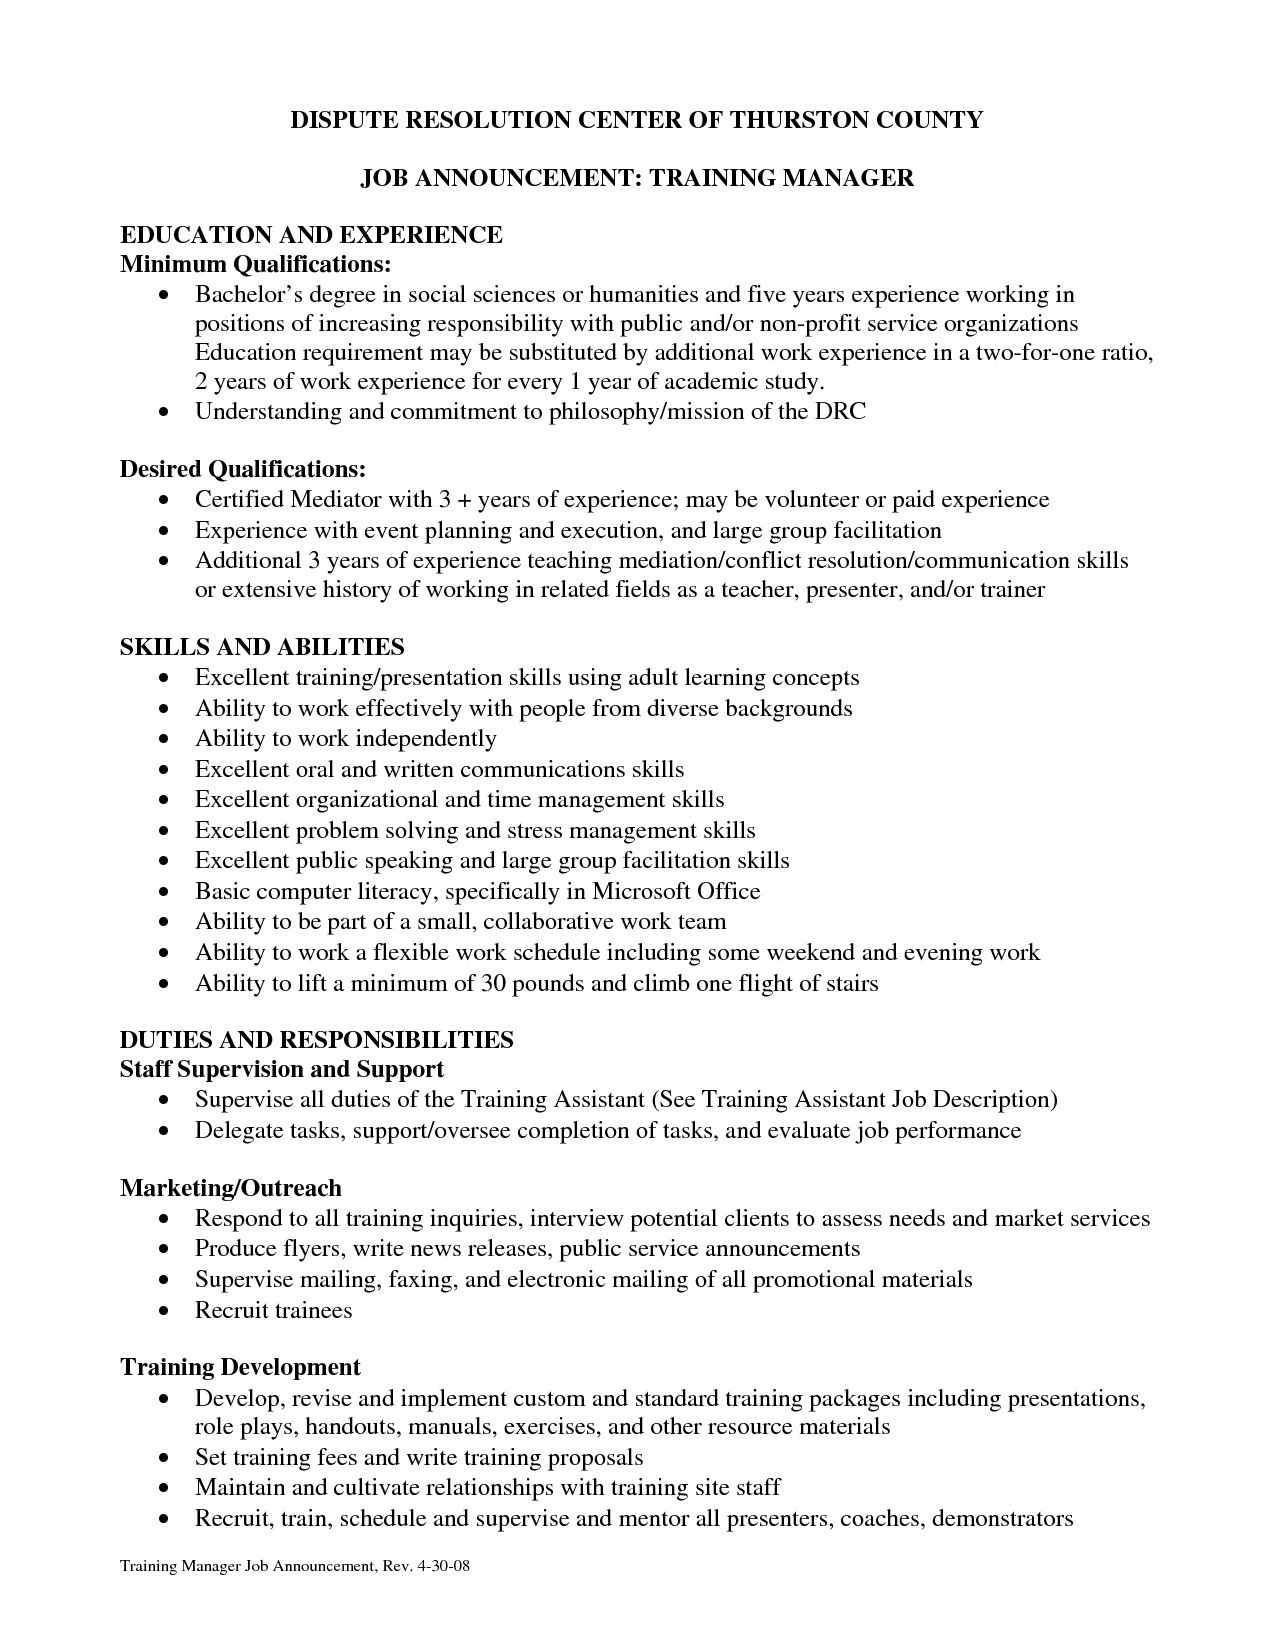 Amazing Training Coordinator Resume Cover Letter   Training Coordinator Resume Cover  Letter We Provide As Reference To Make Correct And Good Quality Resume.